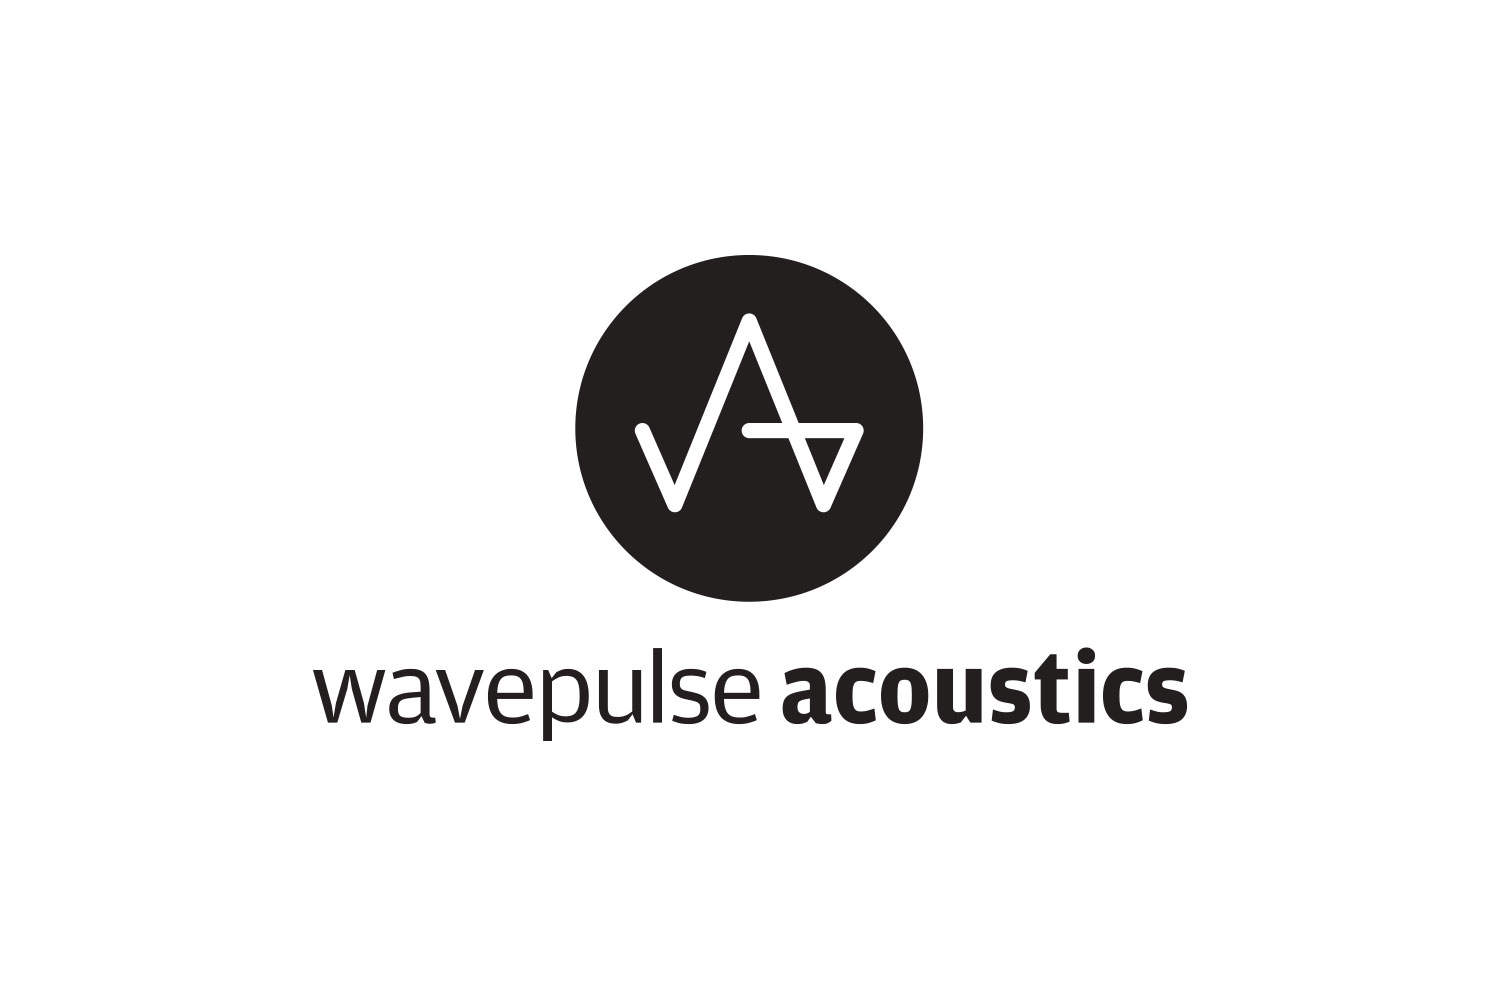 wavepulse acoustic logo designed by The Logo Smith